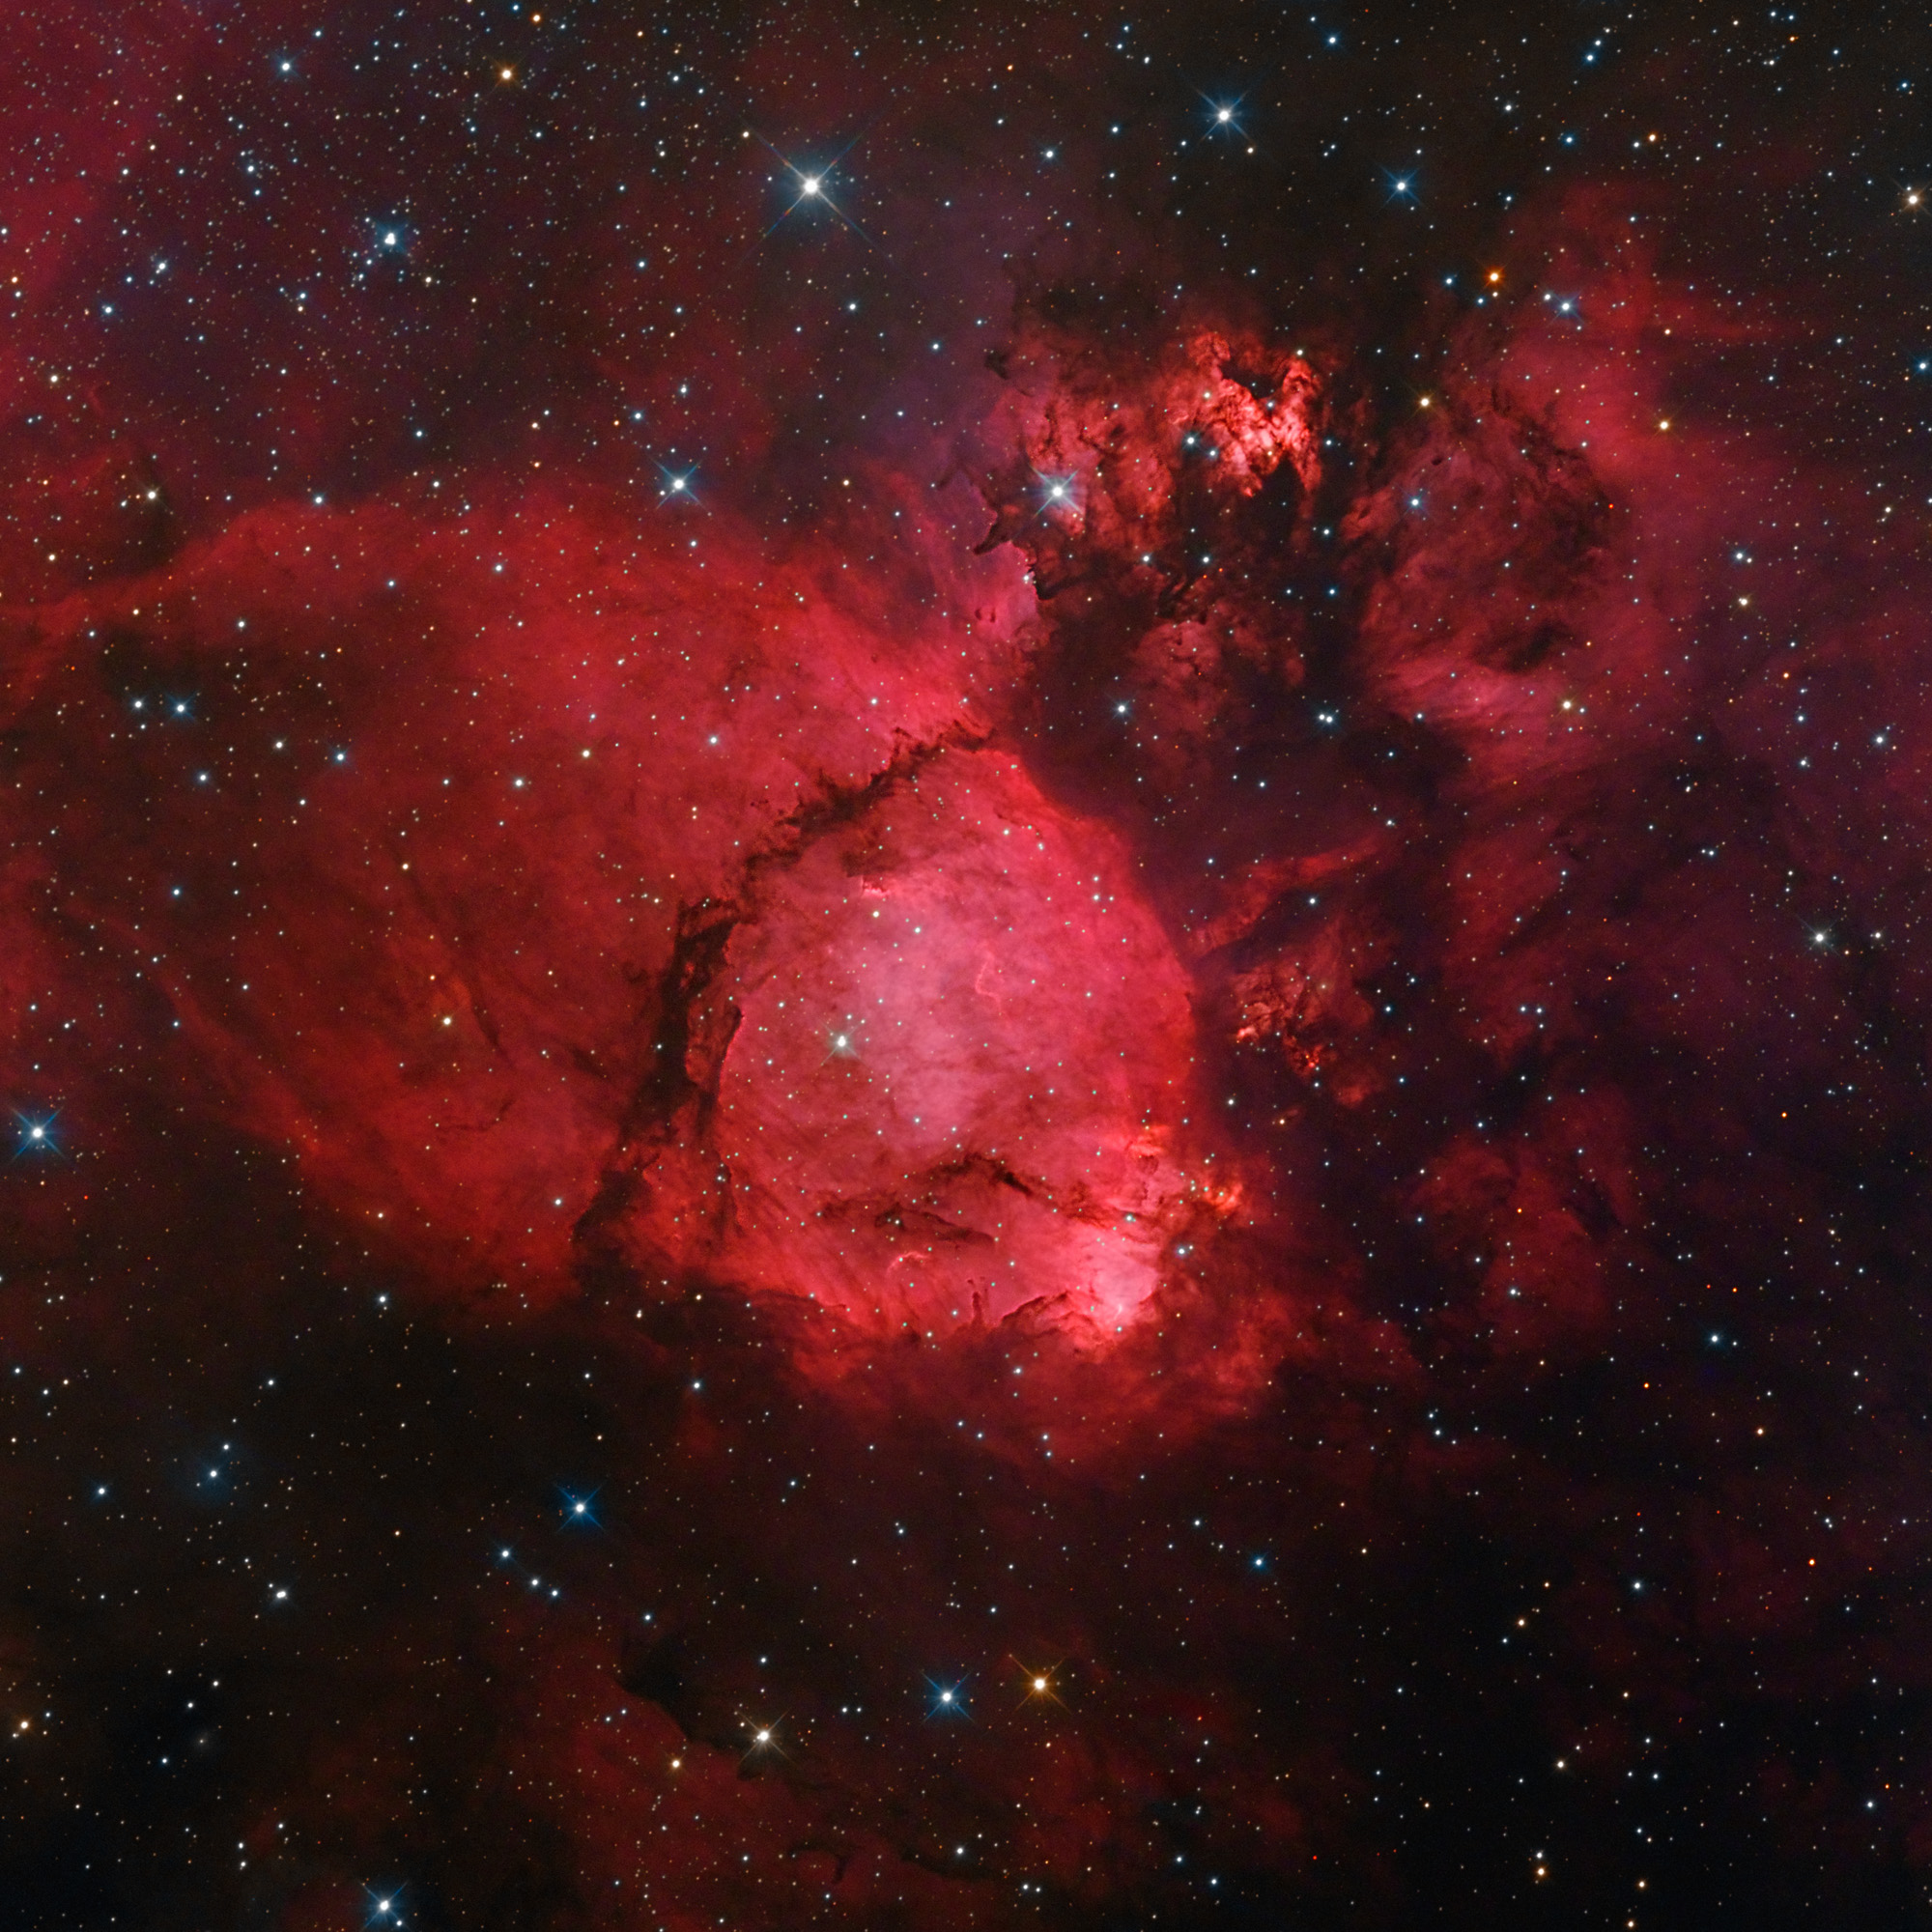 Skywatchers Find Striking View Deep in the Heart Nebula